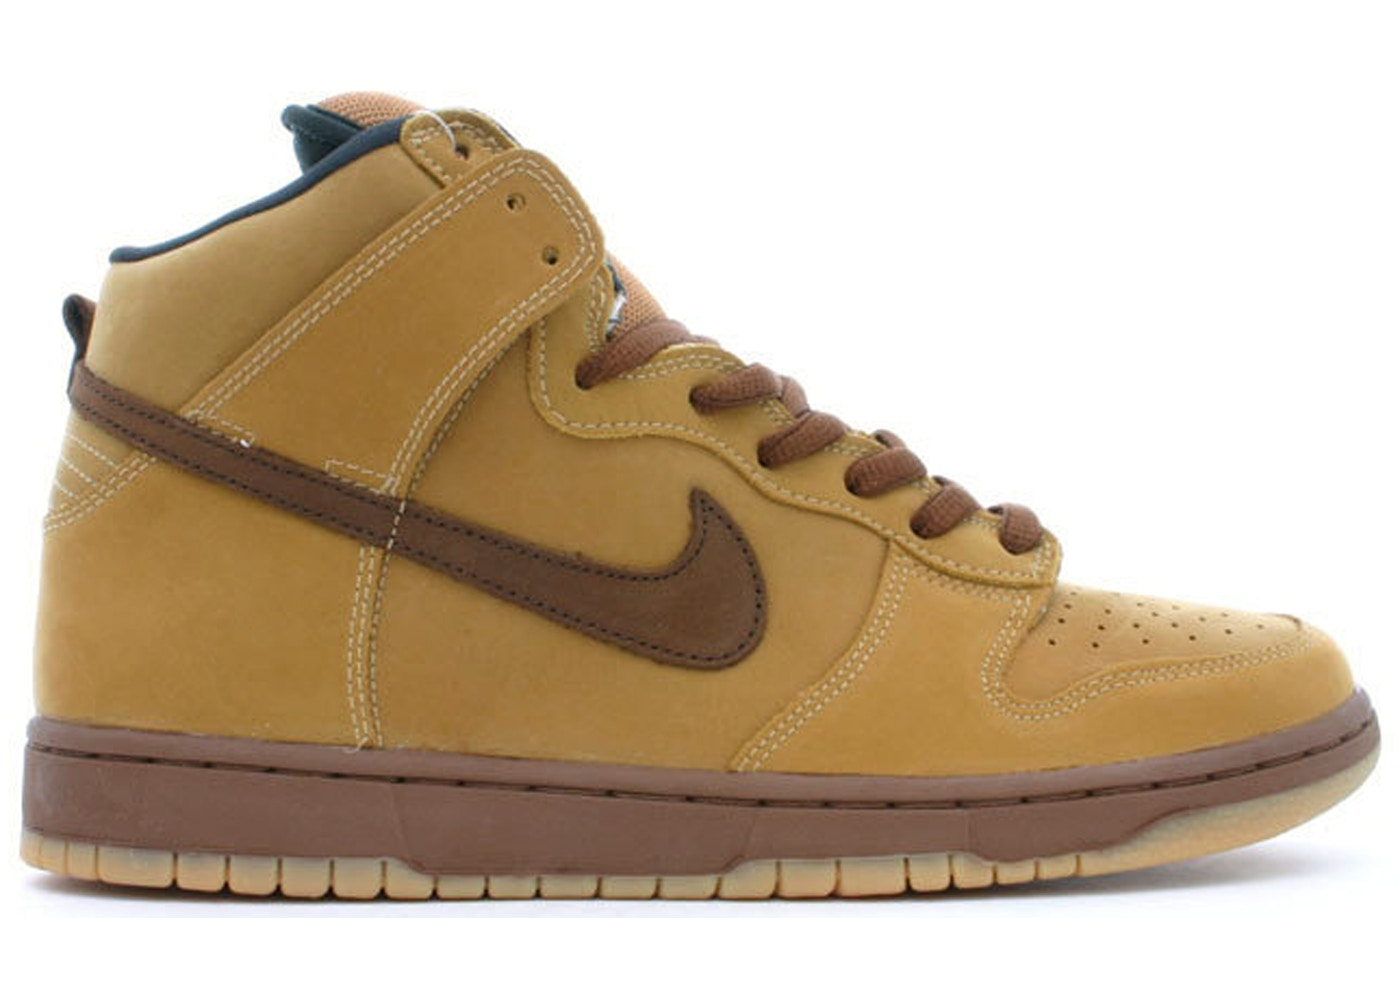 675866c2 Sell. or Ask. Size: 10. View All Bids. Nike Dunk SB High Wheat